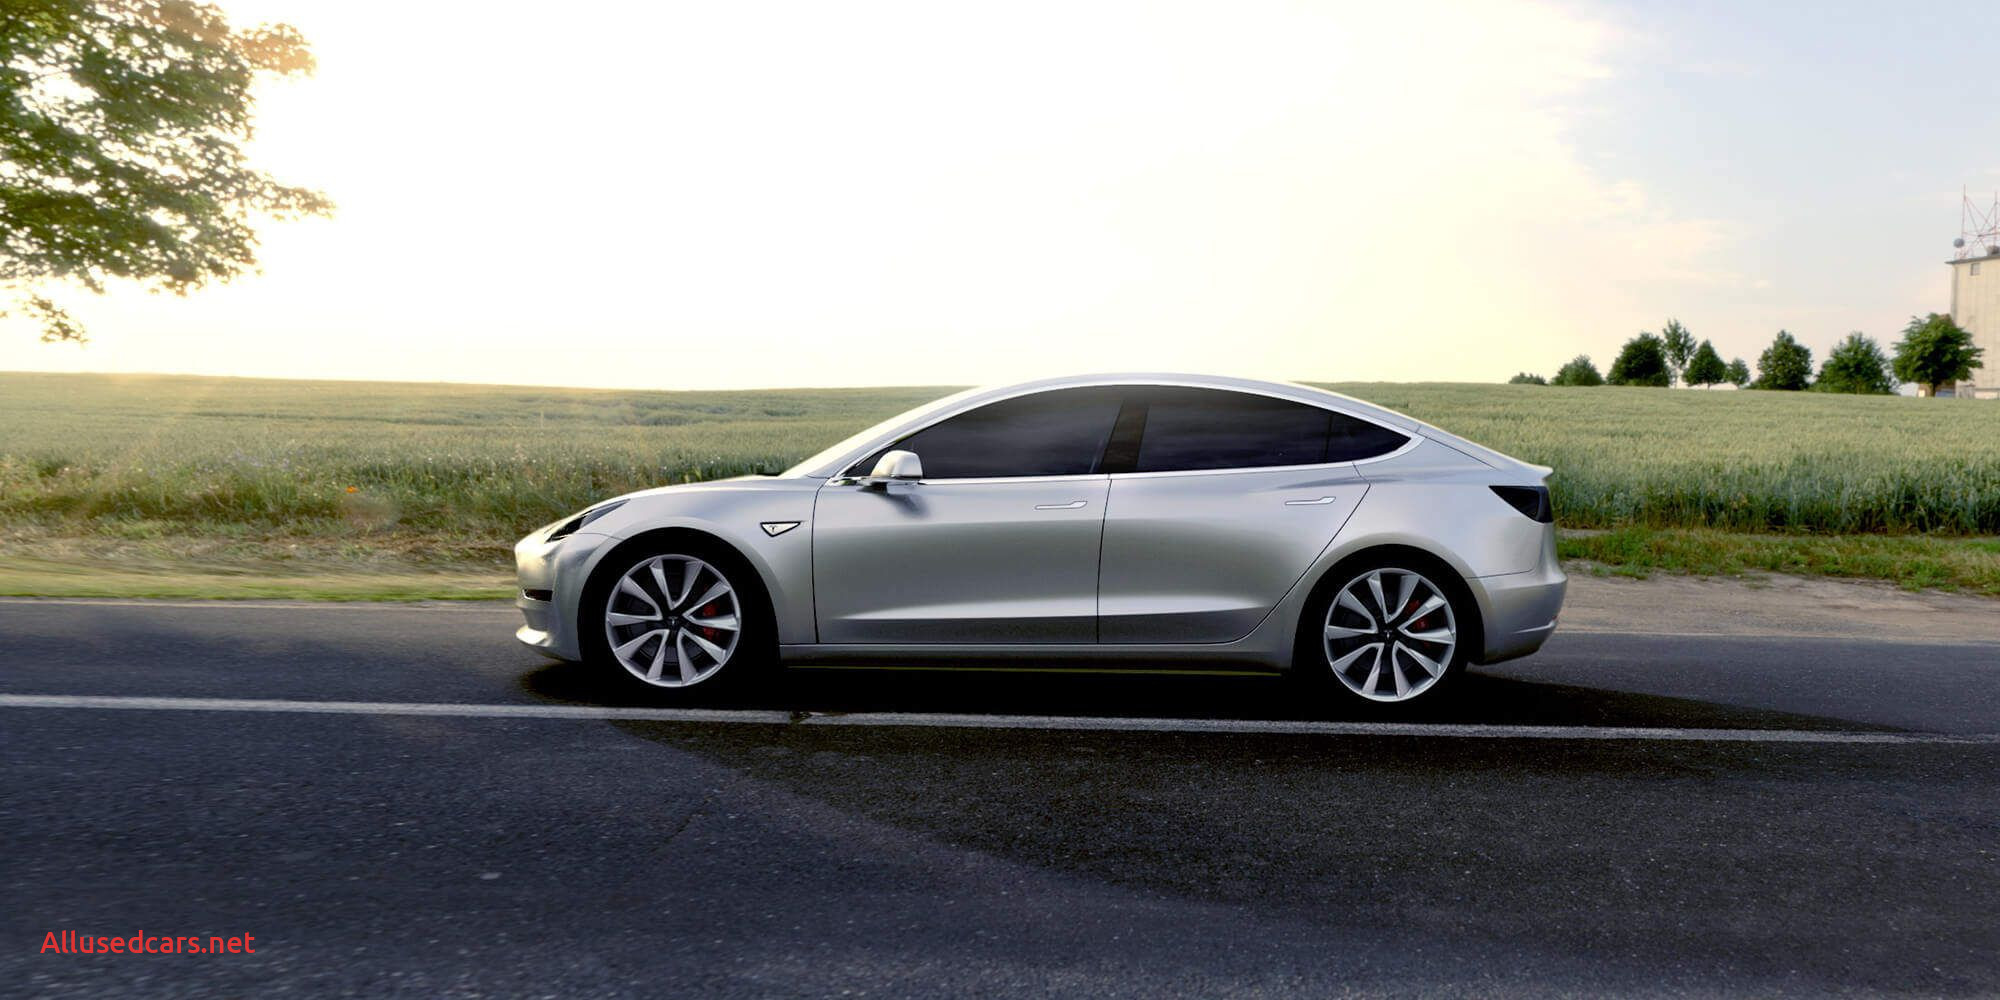 Tesla or Hybrid Awesome the New $35k Tesla Model 3 Finally Makes Electric Cars Cool